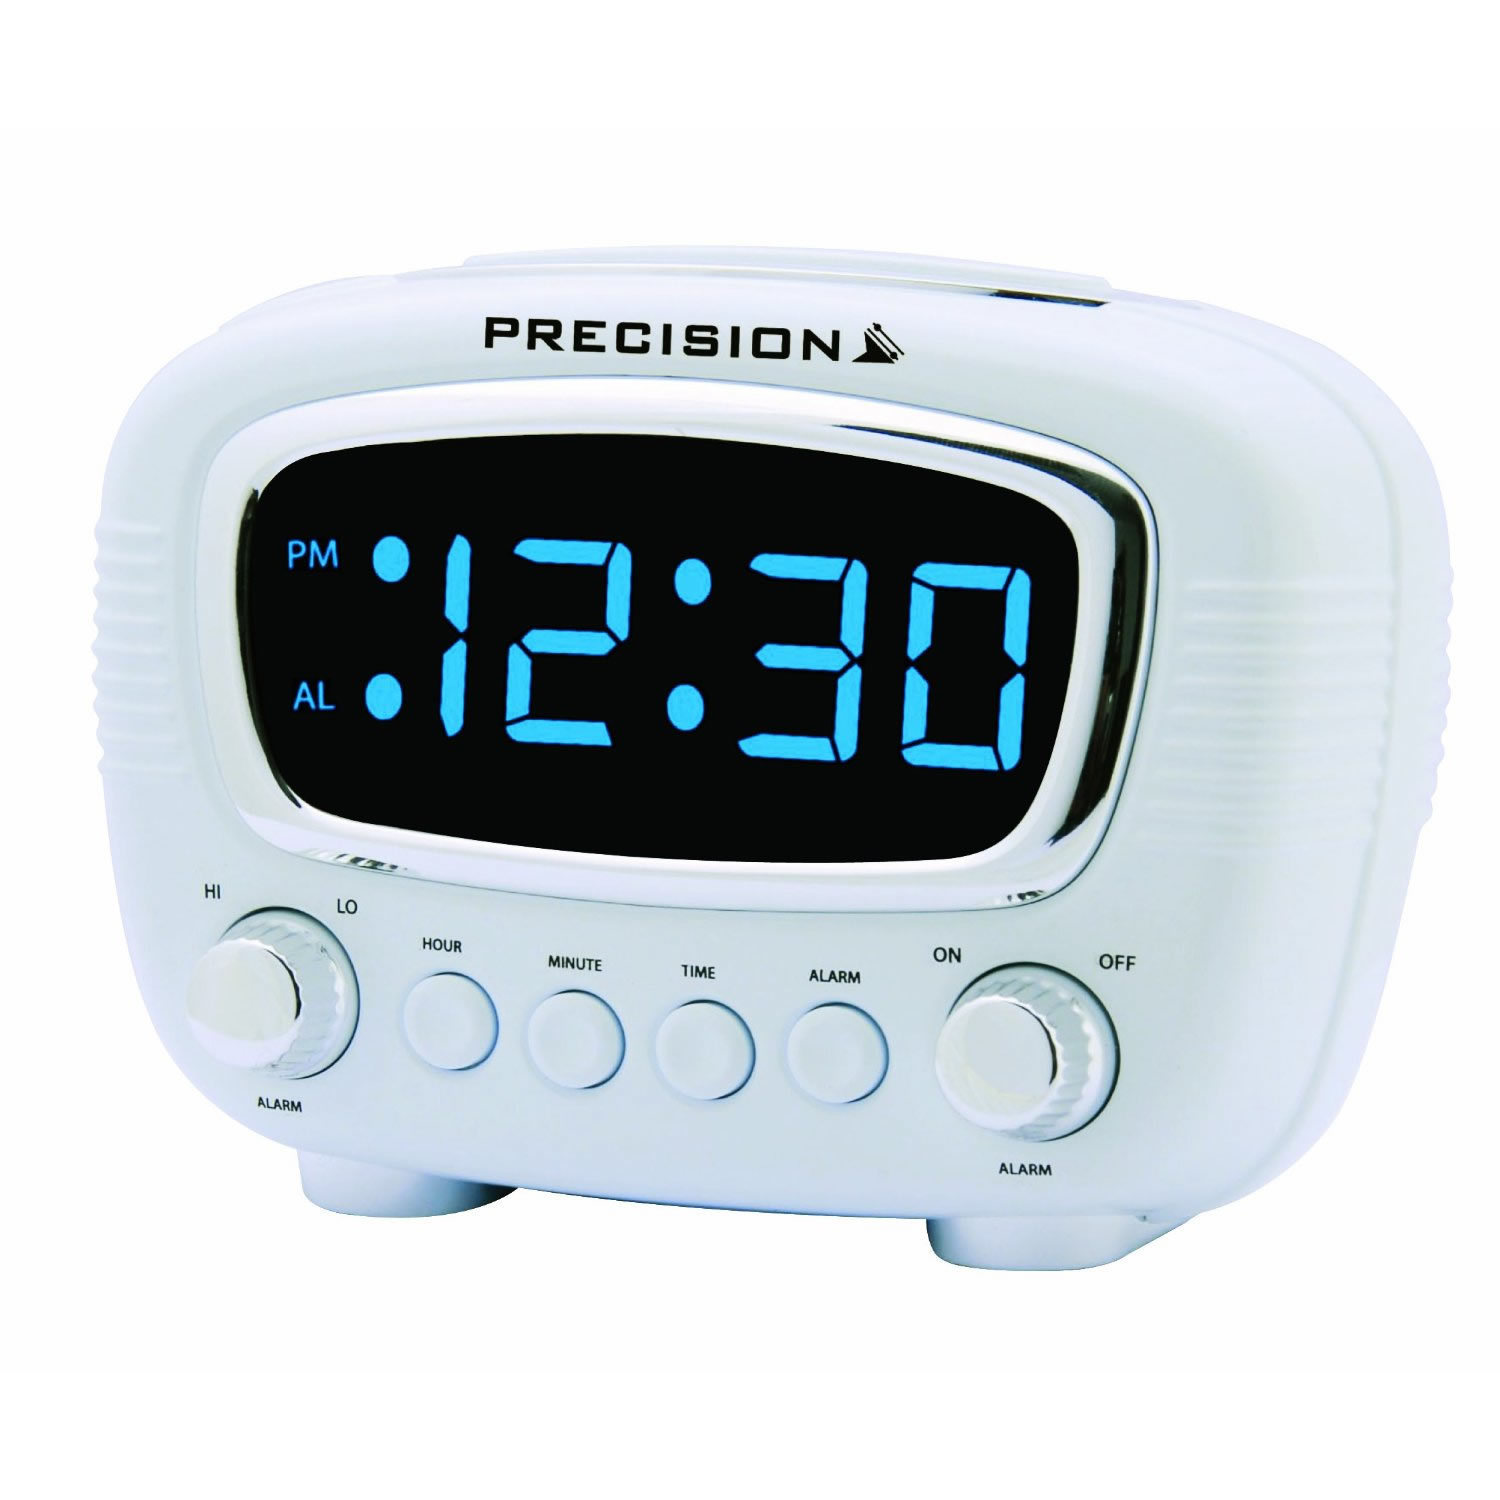 electric radio controlled led alarm clock accurate precision white clocks snooze ebay. Black Bedroom Furniture Sets. Home Design Ideas